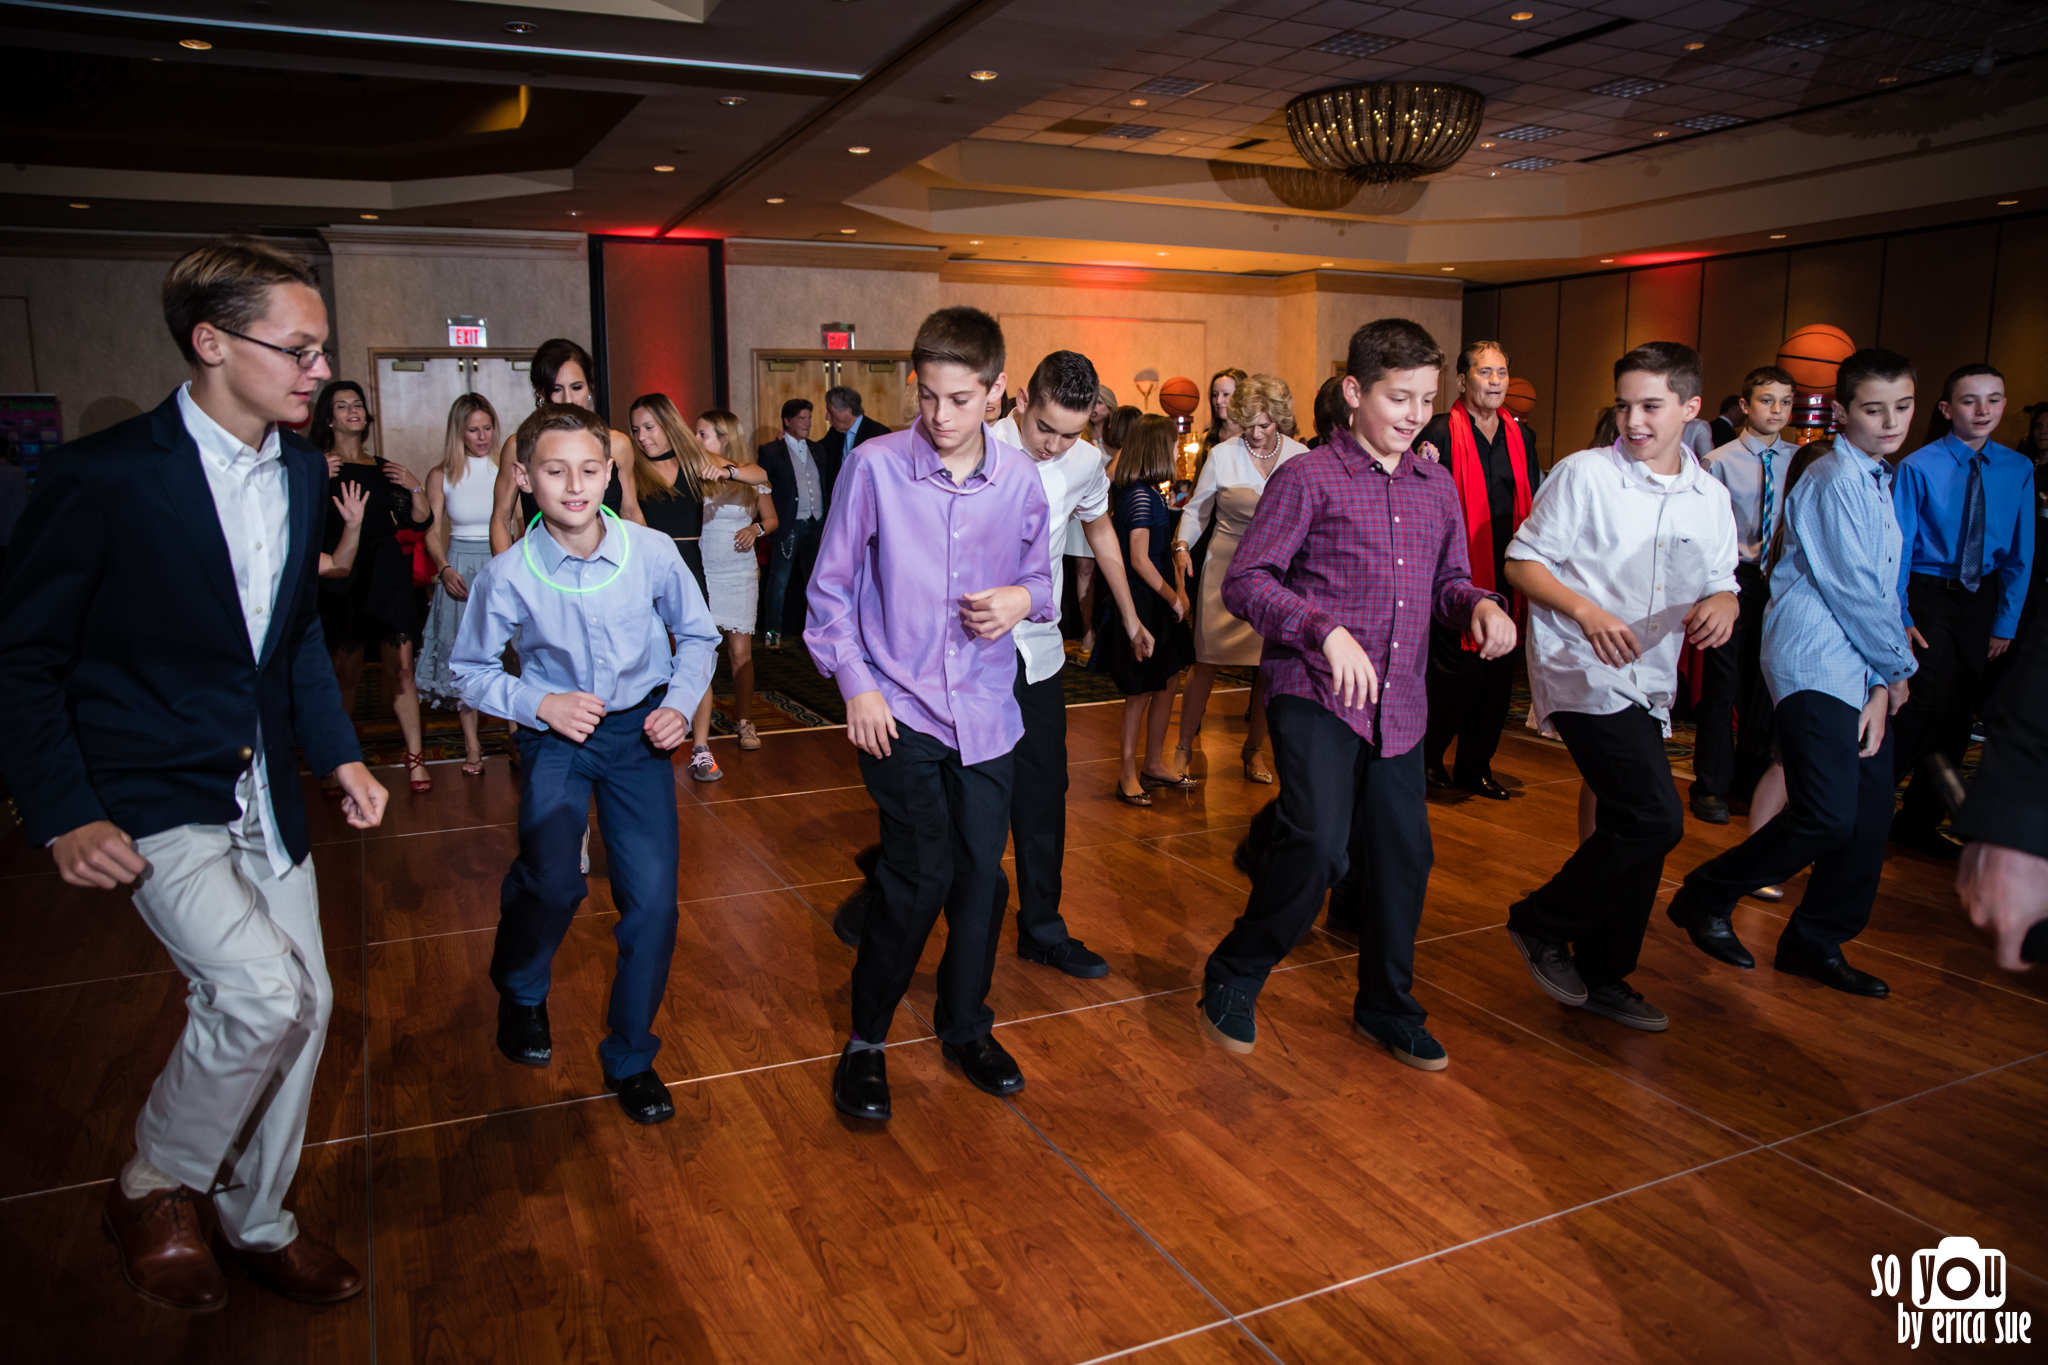 bar-mitzvah-photographer-parkland-fl-marriott-6674.jpg